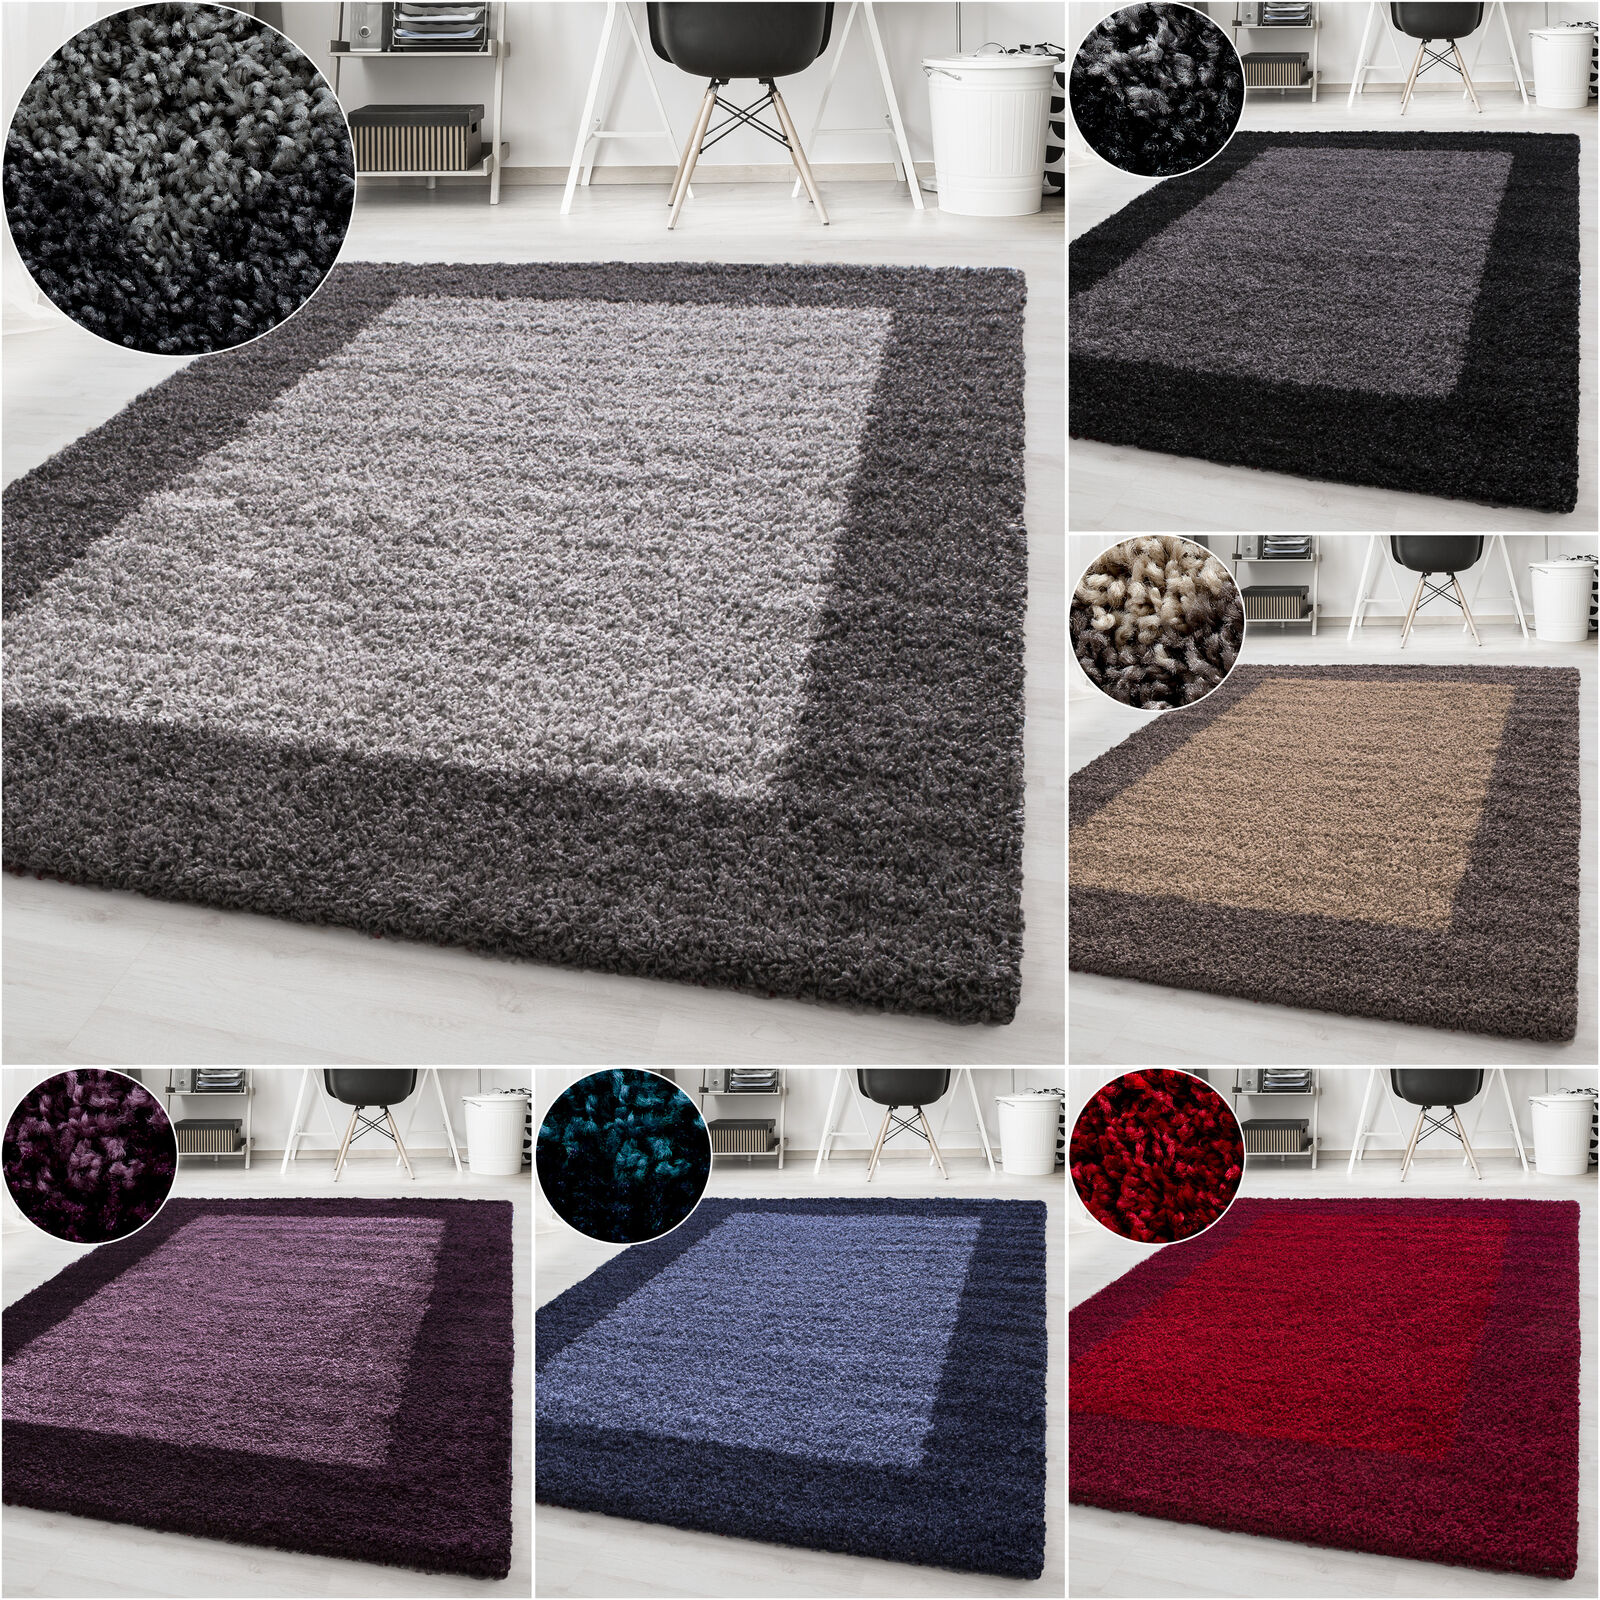 Axminster Teppiche Carpets Rugs Living Room Shaggy Designer Carpets Rugs With Cm